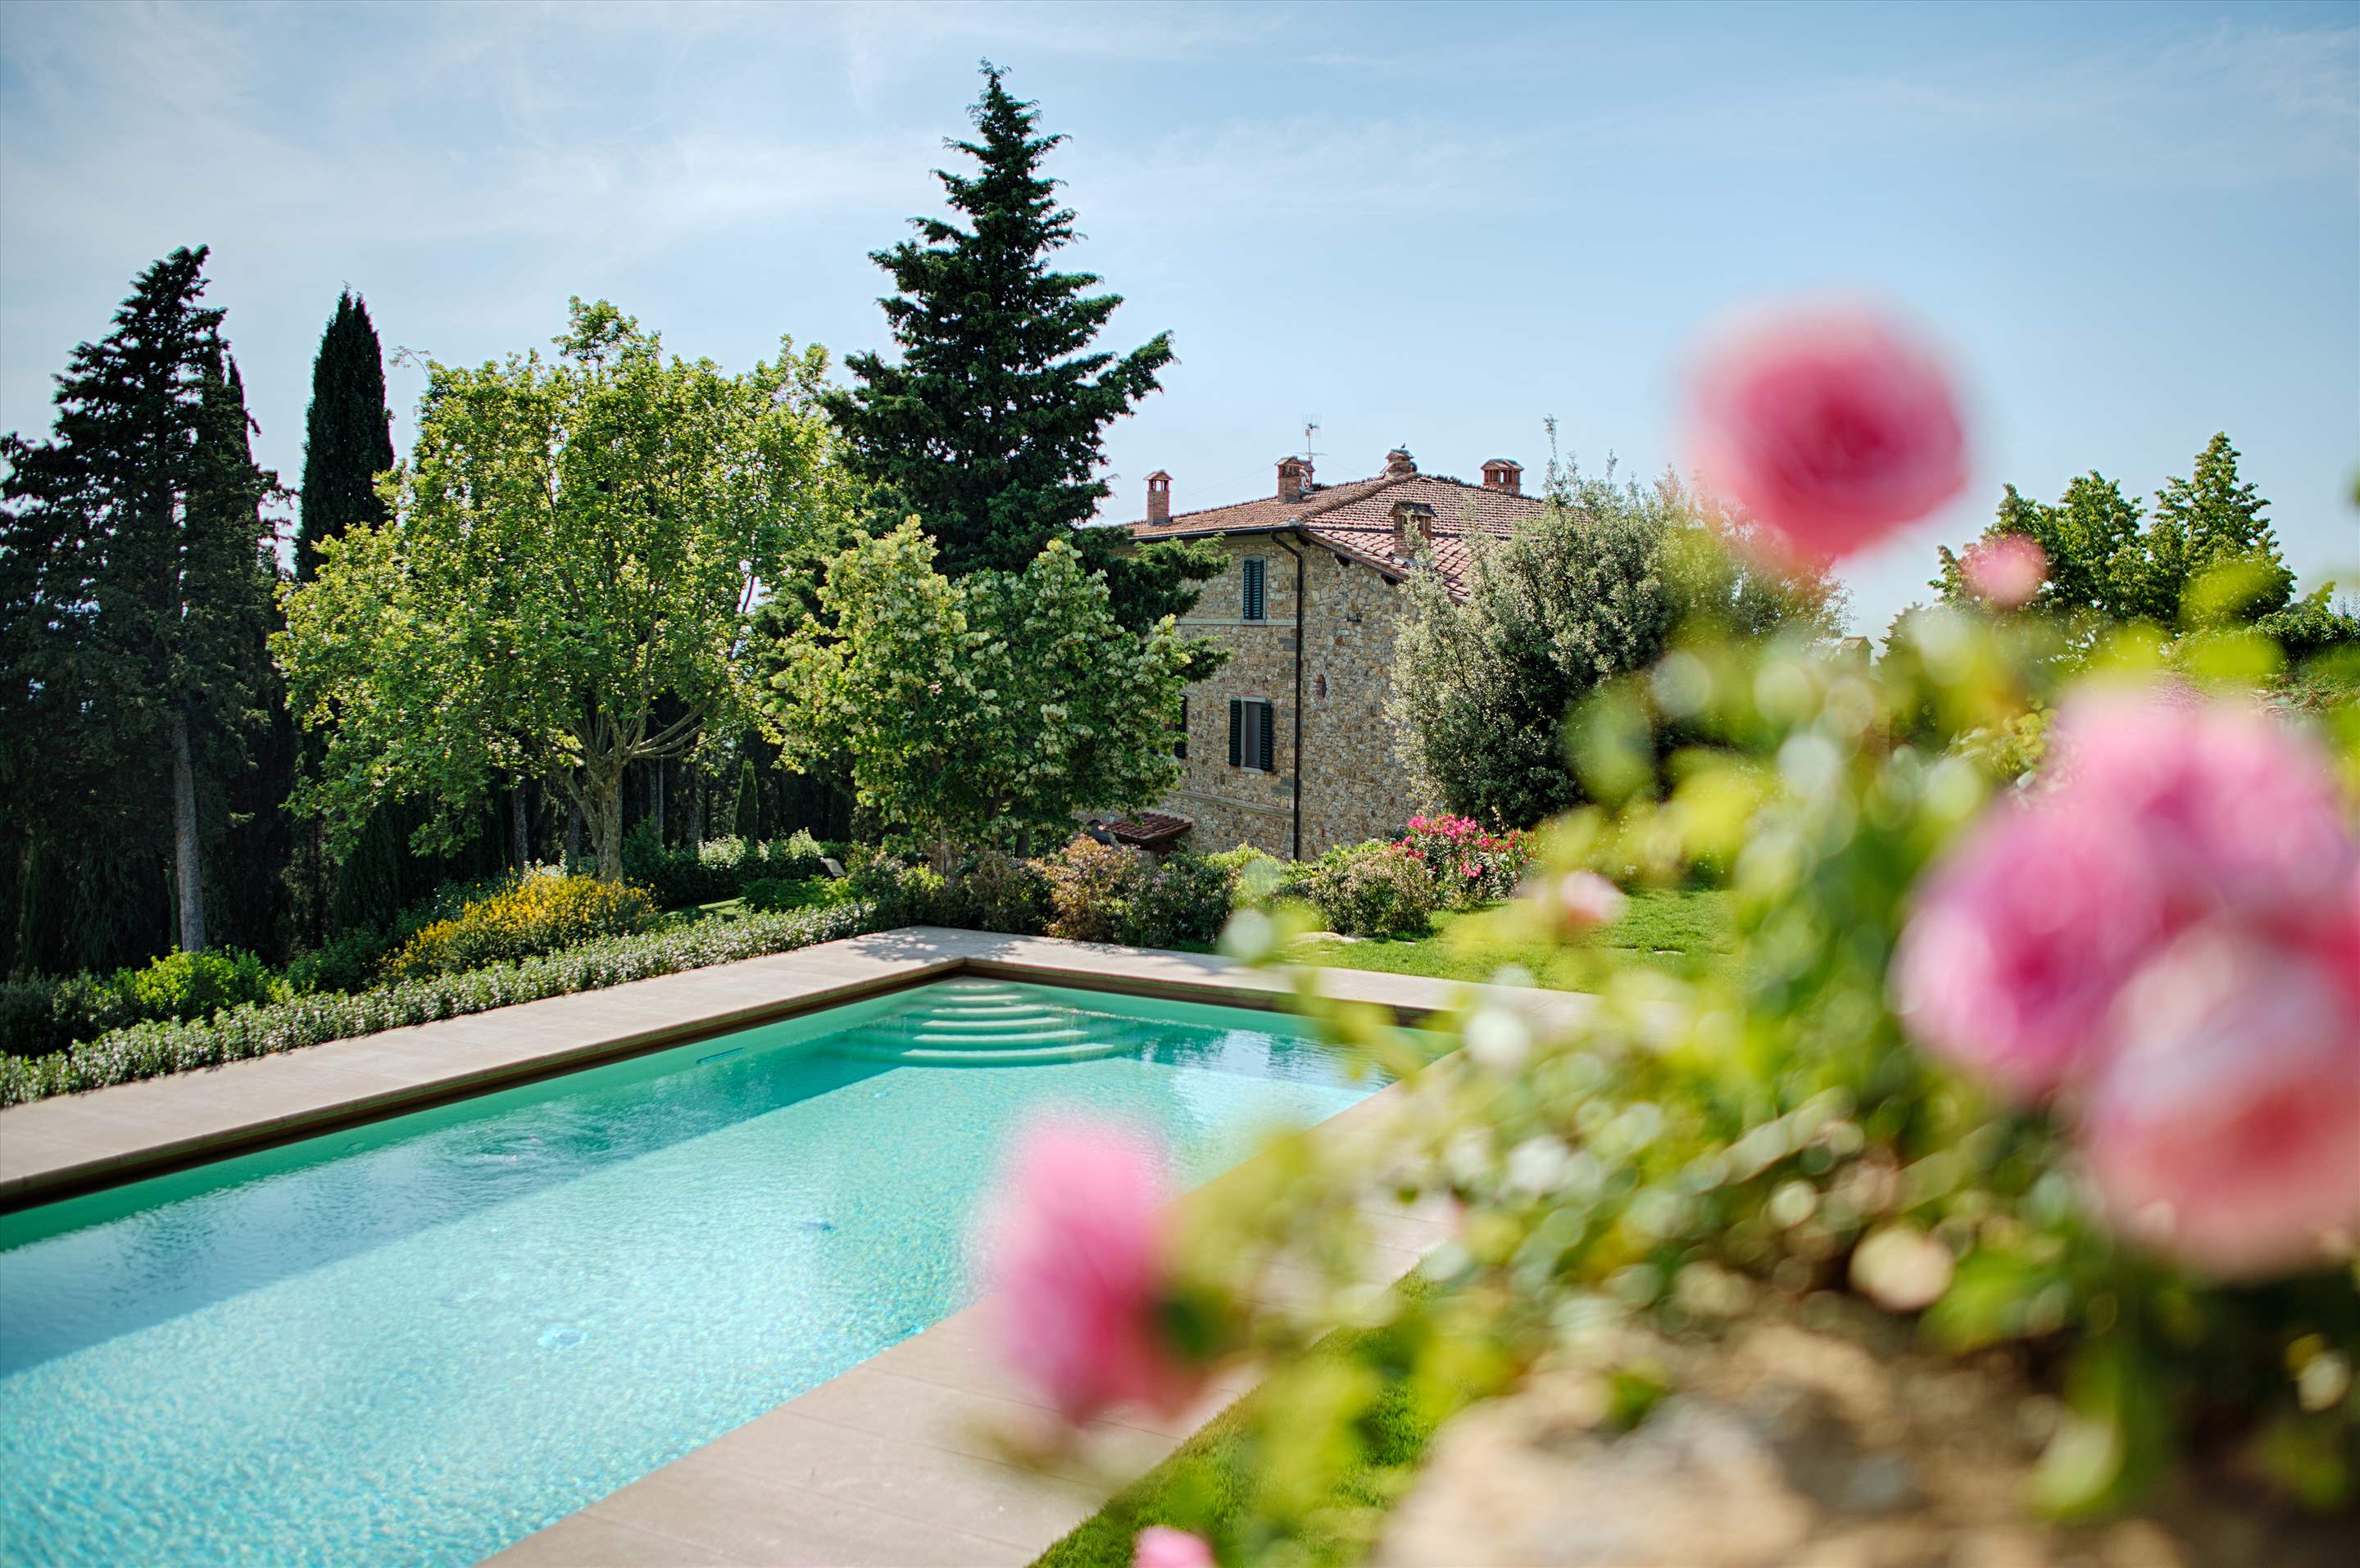 Villa La Valetta, 1 Bed Apt Ulivo, 1 bedroom villa in Chianti & Countryside, Tuscany Photo #14